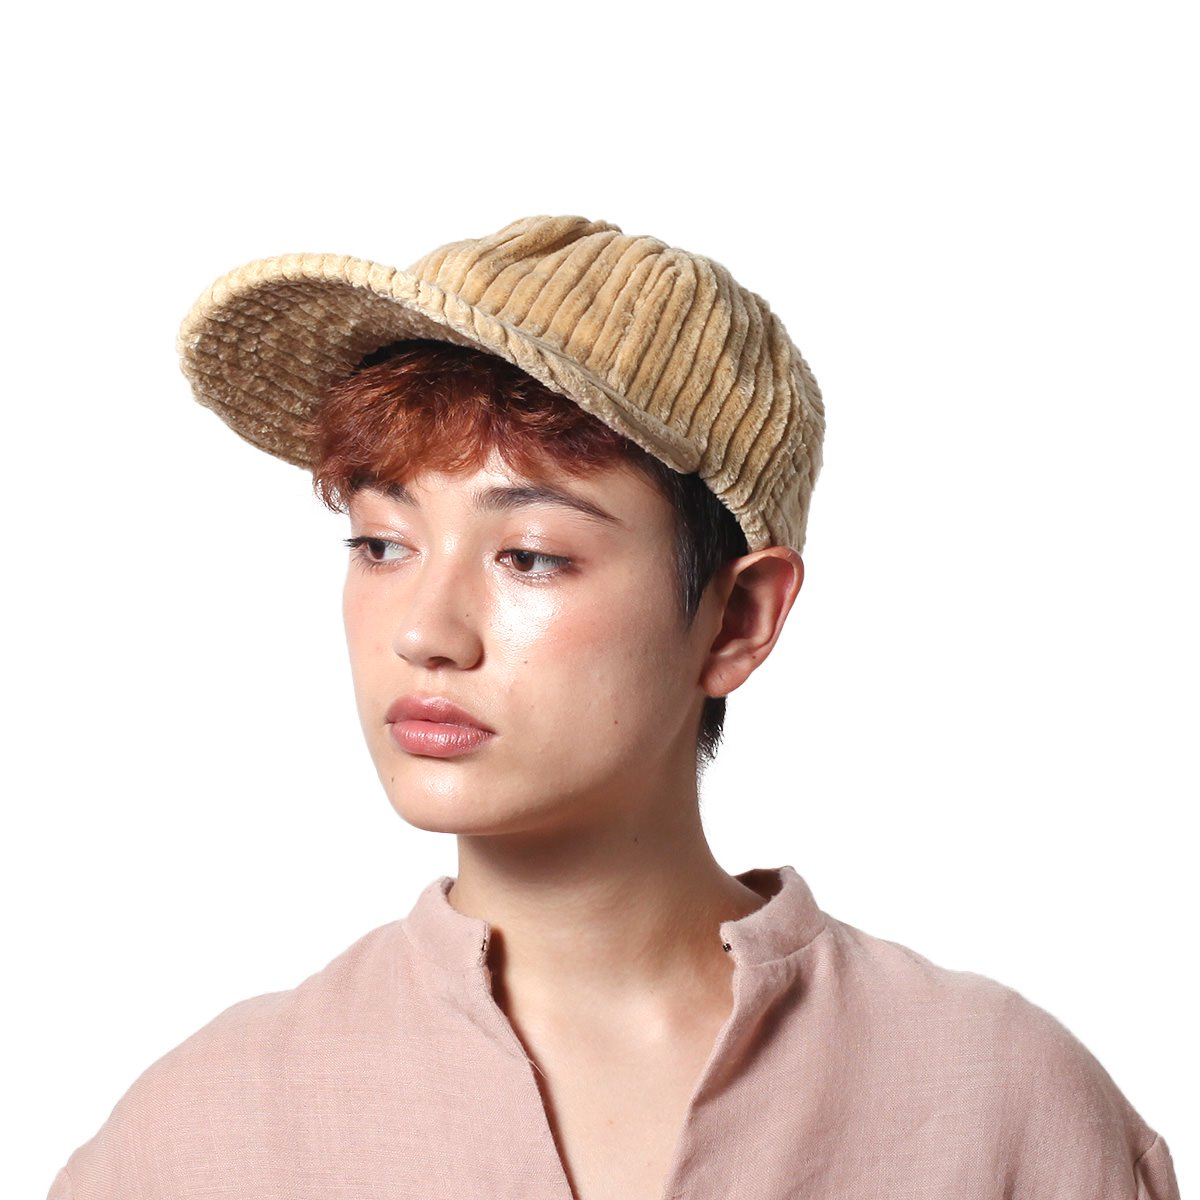 WIDE CORDUROY 8PANEL CAP 詳細画像11